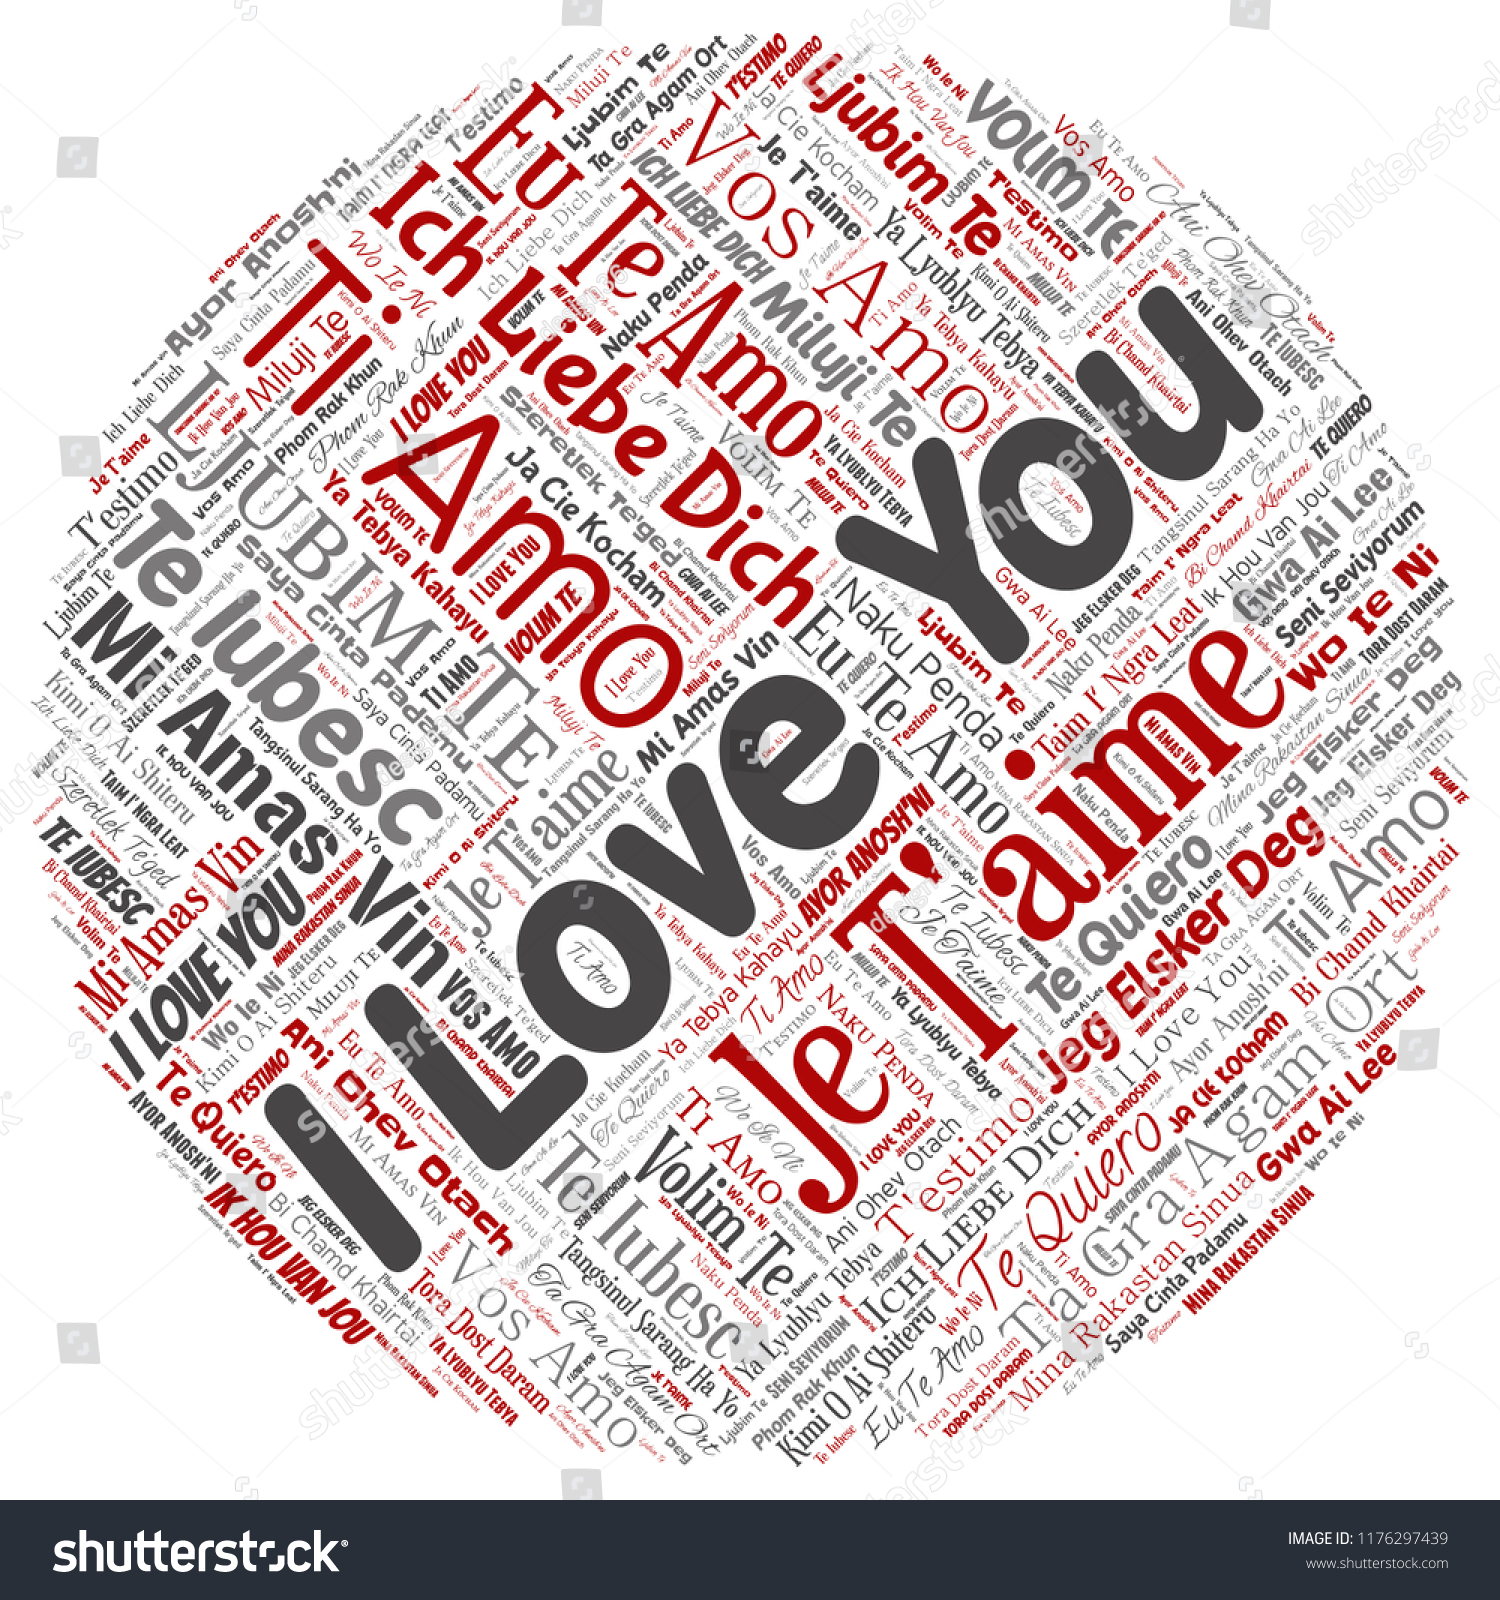 Vector Conceptual Sweet Romantic I Love You Multilingual Message Round Circle Red Word Cloud Isolated Background